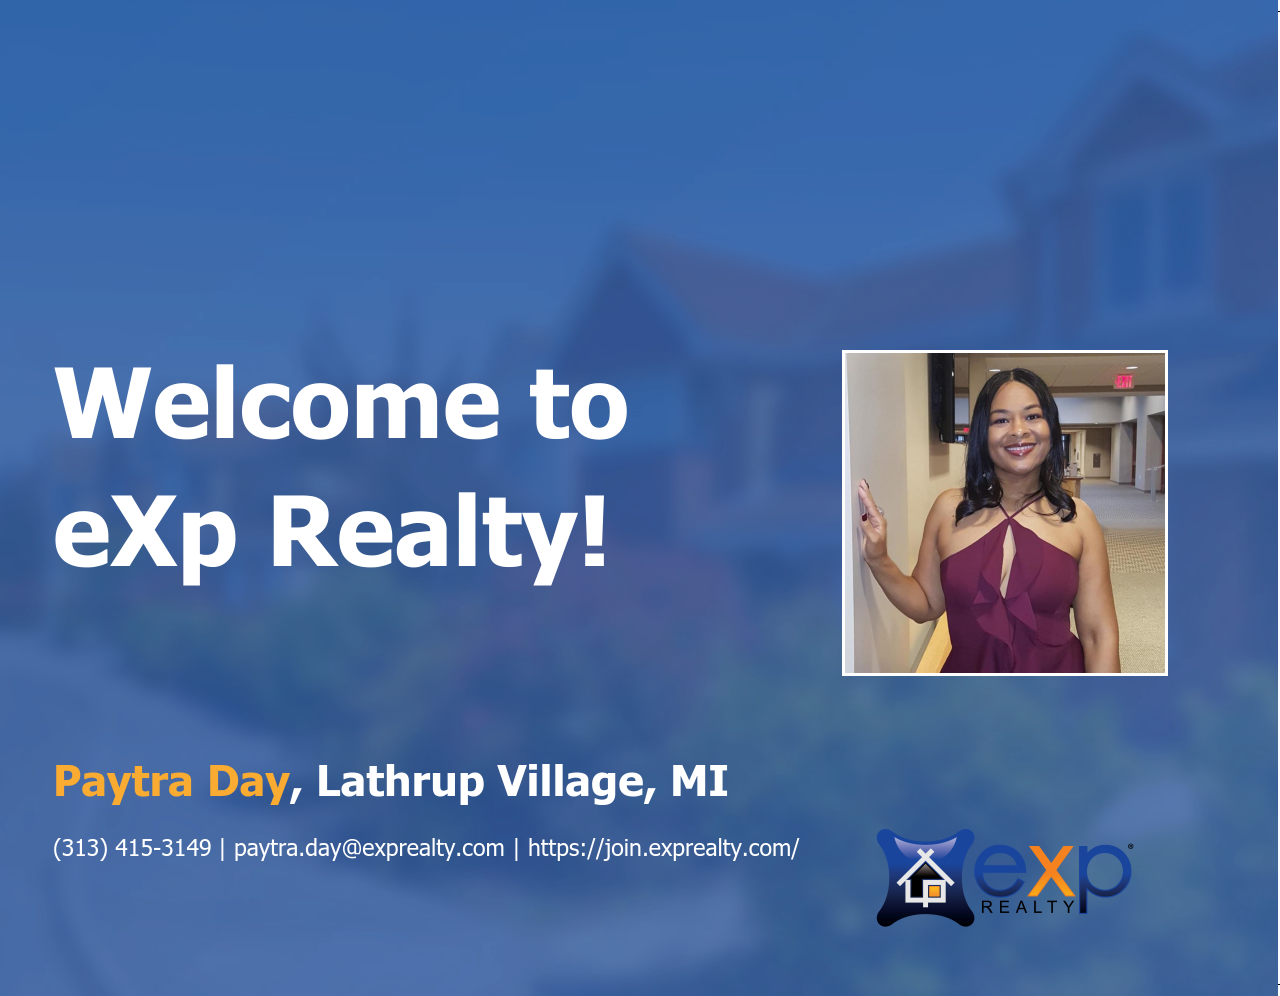 Paytra Day Joined eXp Realty!